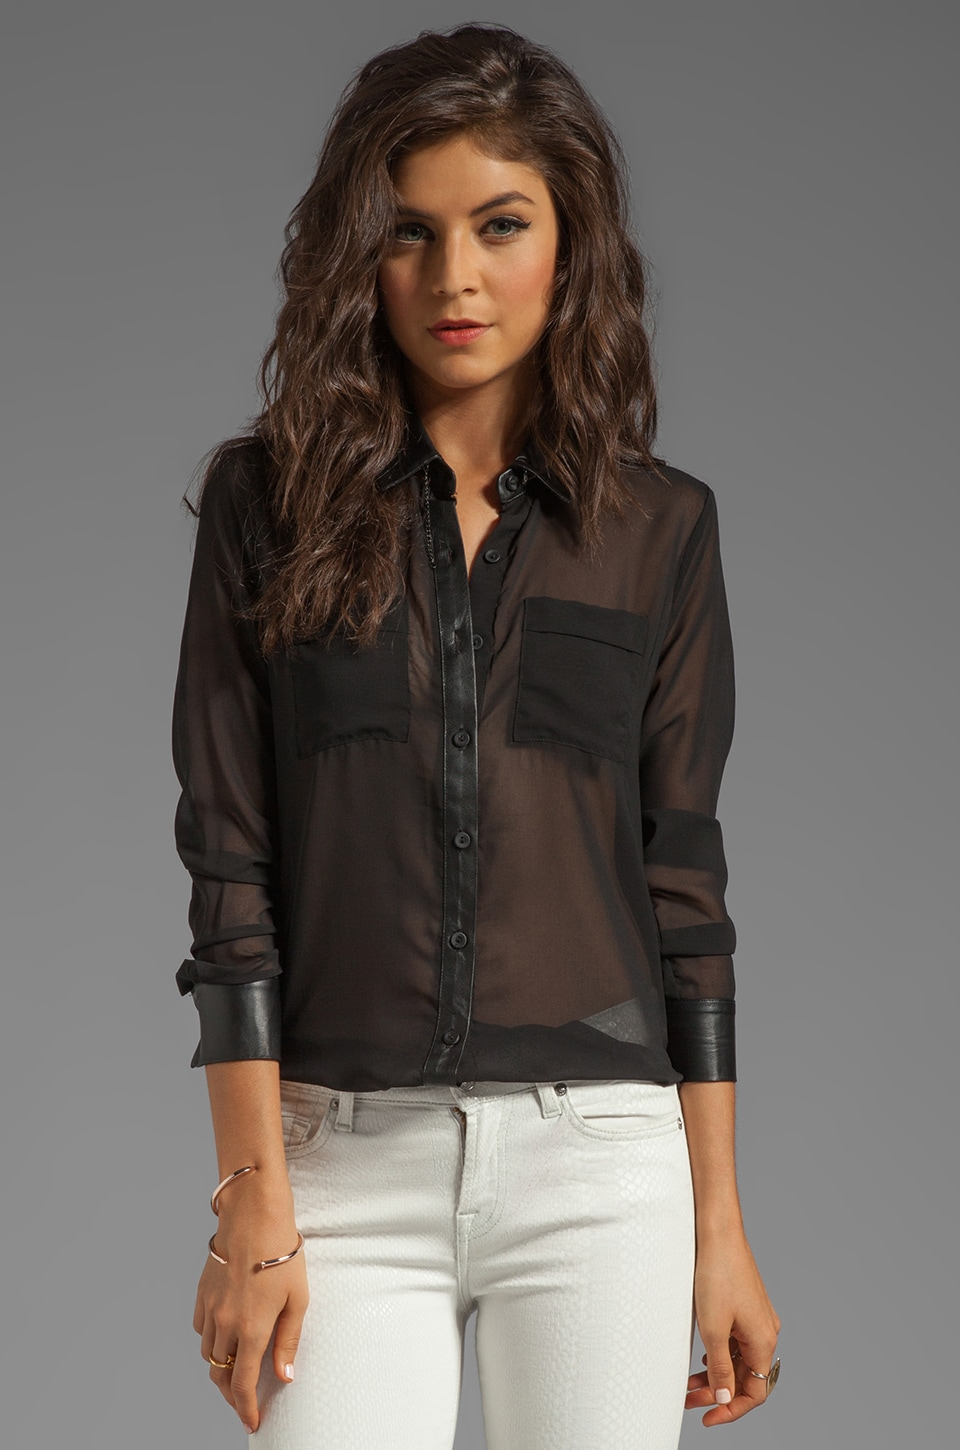 Capulet Leather Contrast Shirt in Black